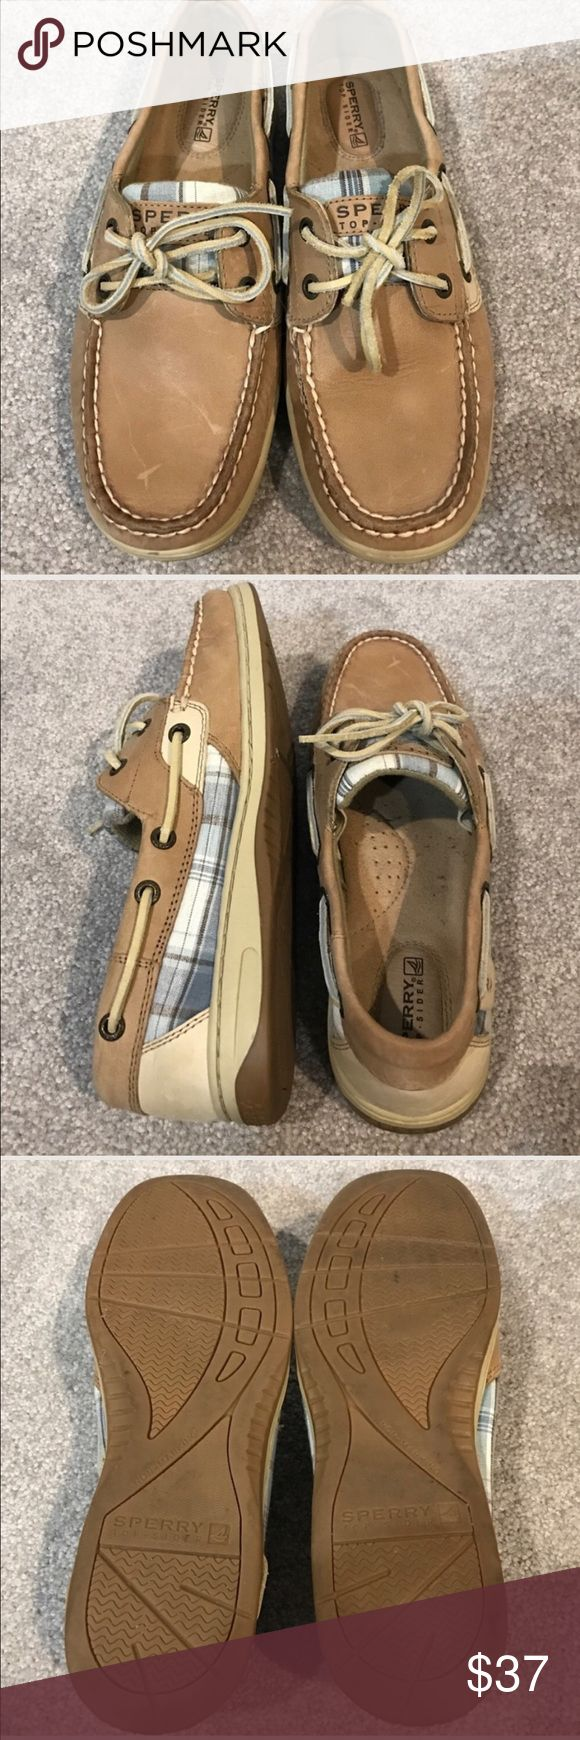 ♦️CLEARANCE♦️SPERRY SHOES SIZE 7M LEATHER UPPERS. SPERRY SHOES SIZE 7M LEATHER UPPERS. Very good condition. Small flaw on front of one shoe. See pic Sperry Top-Sider Shoes Flats & Loafers